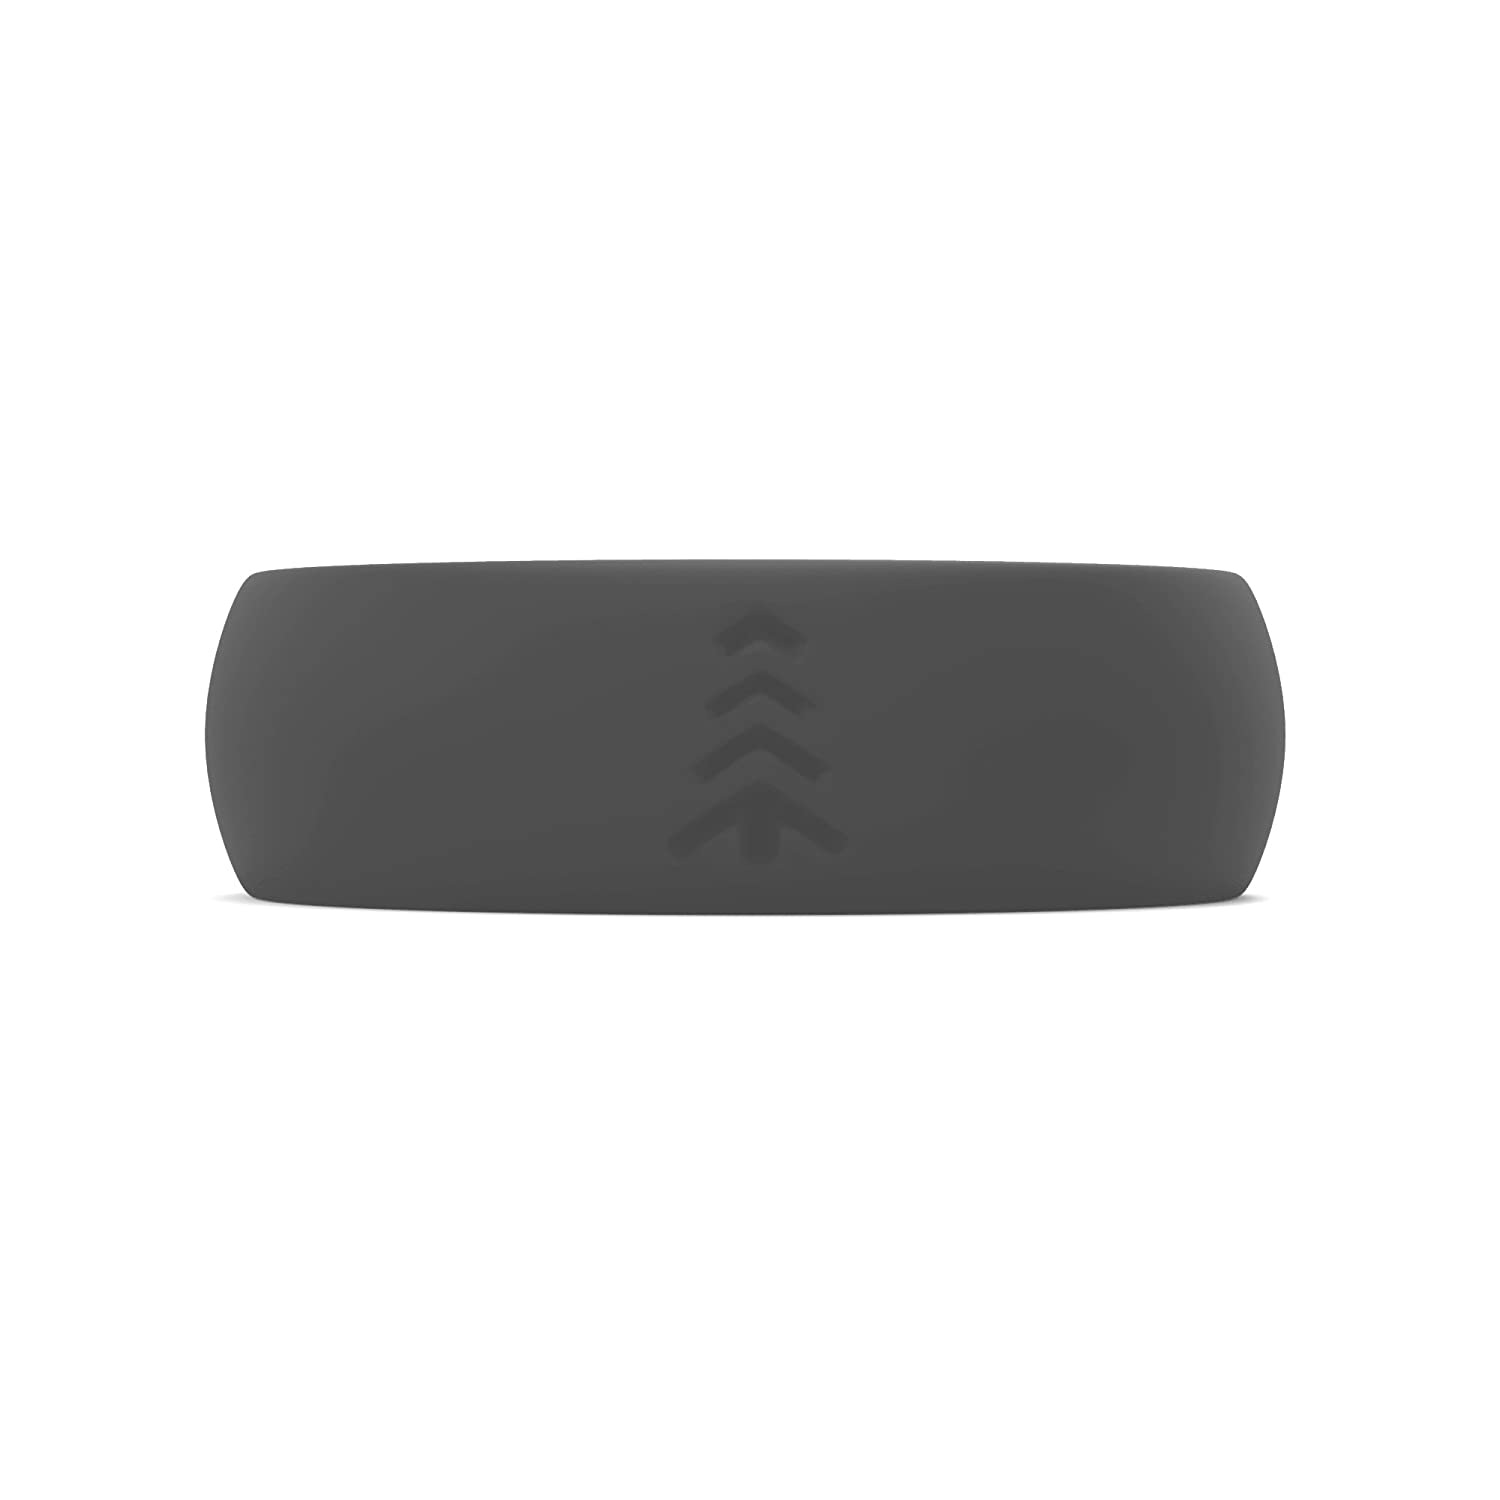 Sports Rubber Wedding Band for Every Day Use Teak Silicone Wedding Ring for Women Yoga Military Training Work Travel and Outdoor